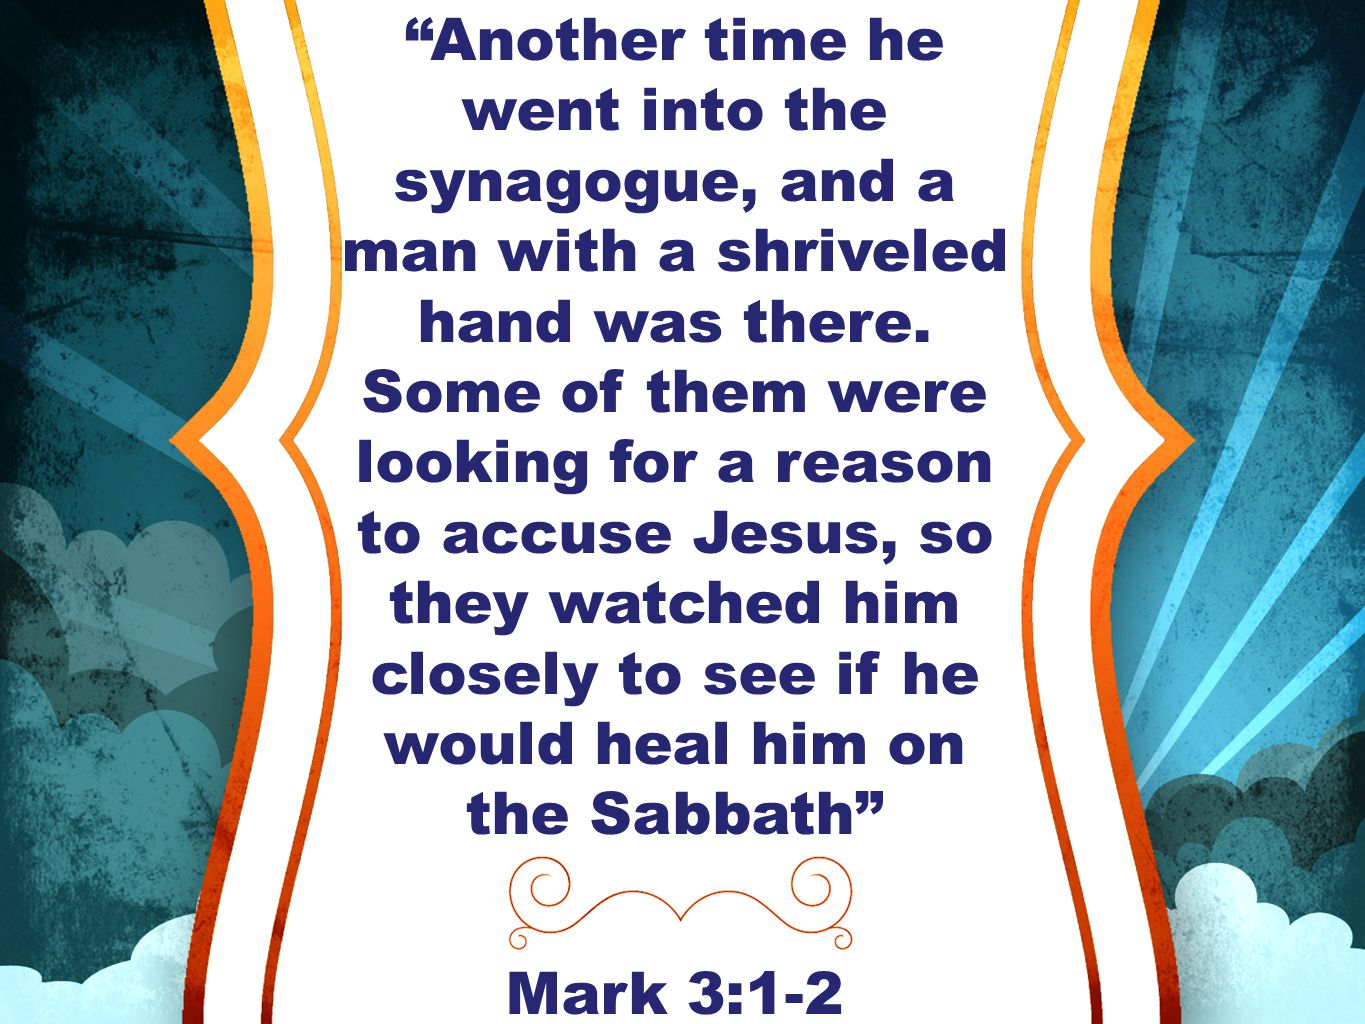 Another time he went into the synagogue, and a man with a shriveled hand was there.